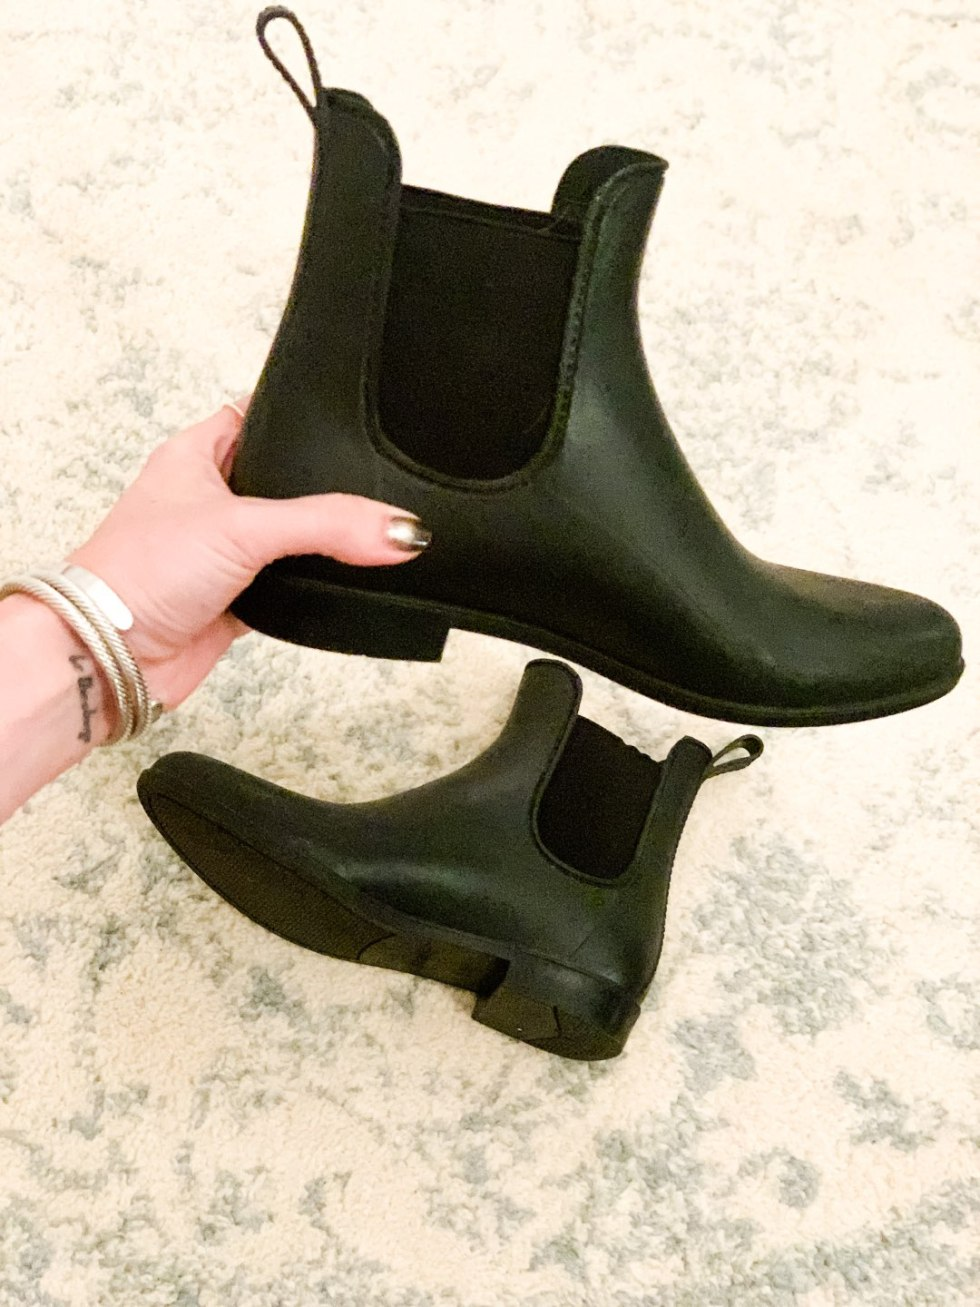 Favorite Cute Winter Booties - I'm Fixin' To - @mbg0112 | My Favorite Cute Winter Booties by popular NC life and style blog, I'm Fixin' To: image of a woman wearing J. Crew Chelsea rain boots.